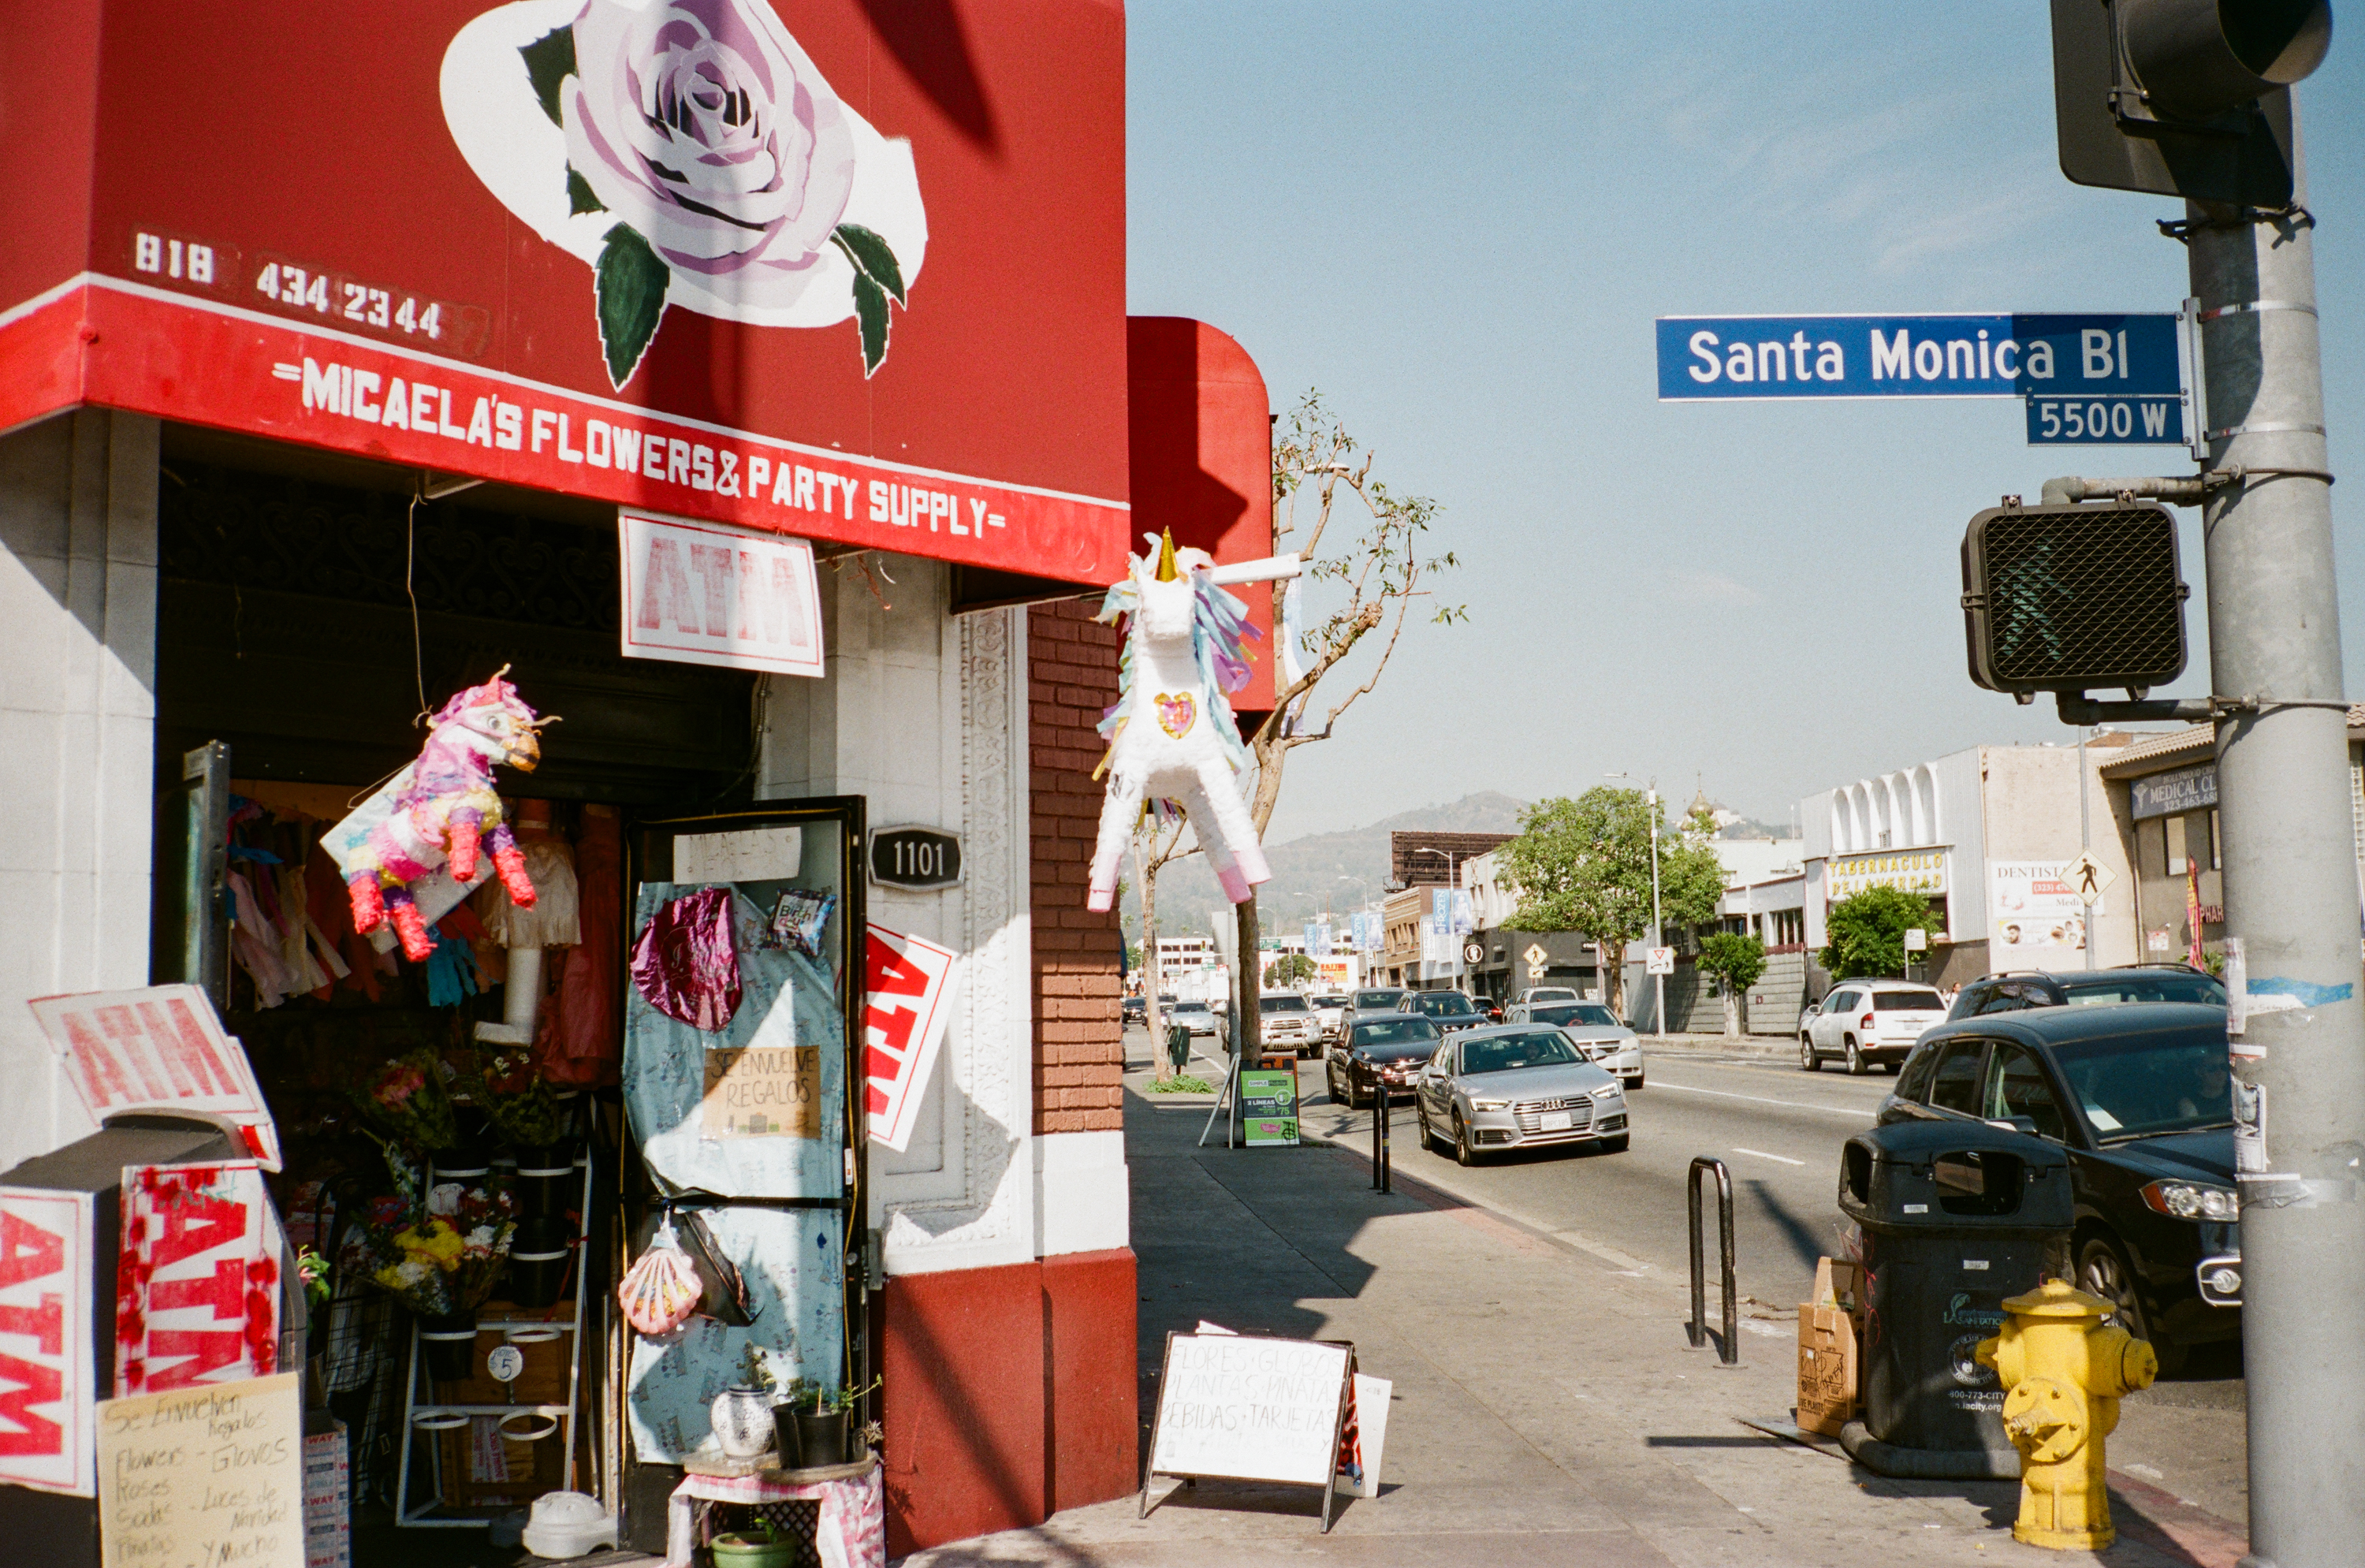 A red awning with a pink rose on it, the outside of Micaela's Flowers & Party Supply, has two unicorn pinatas hanging. The shop is at the corner of Santa Monica Blvd.